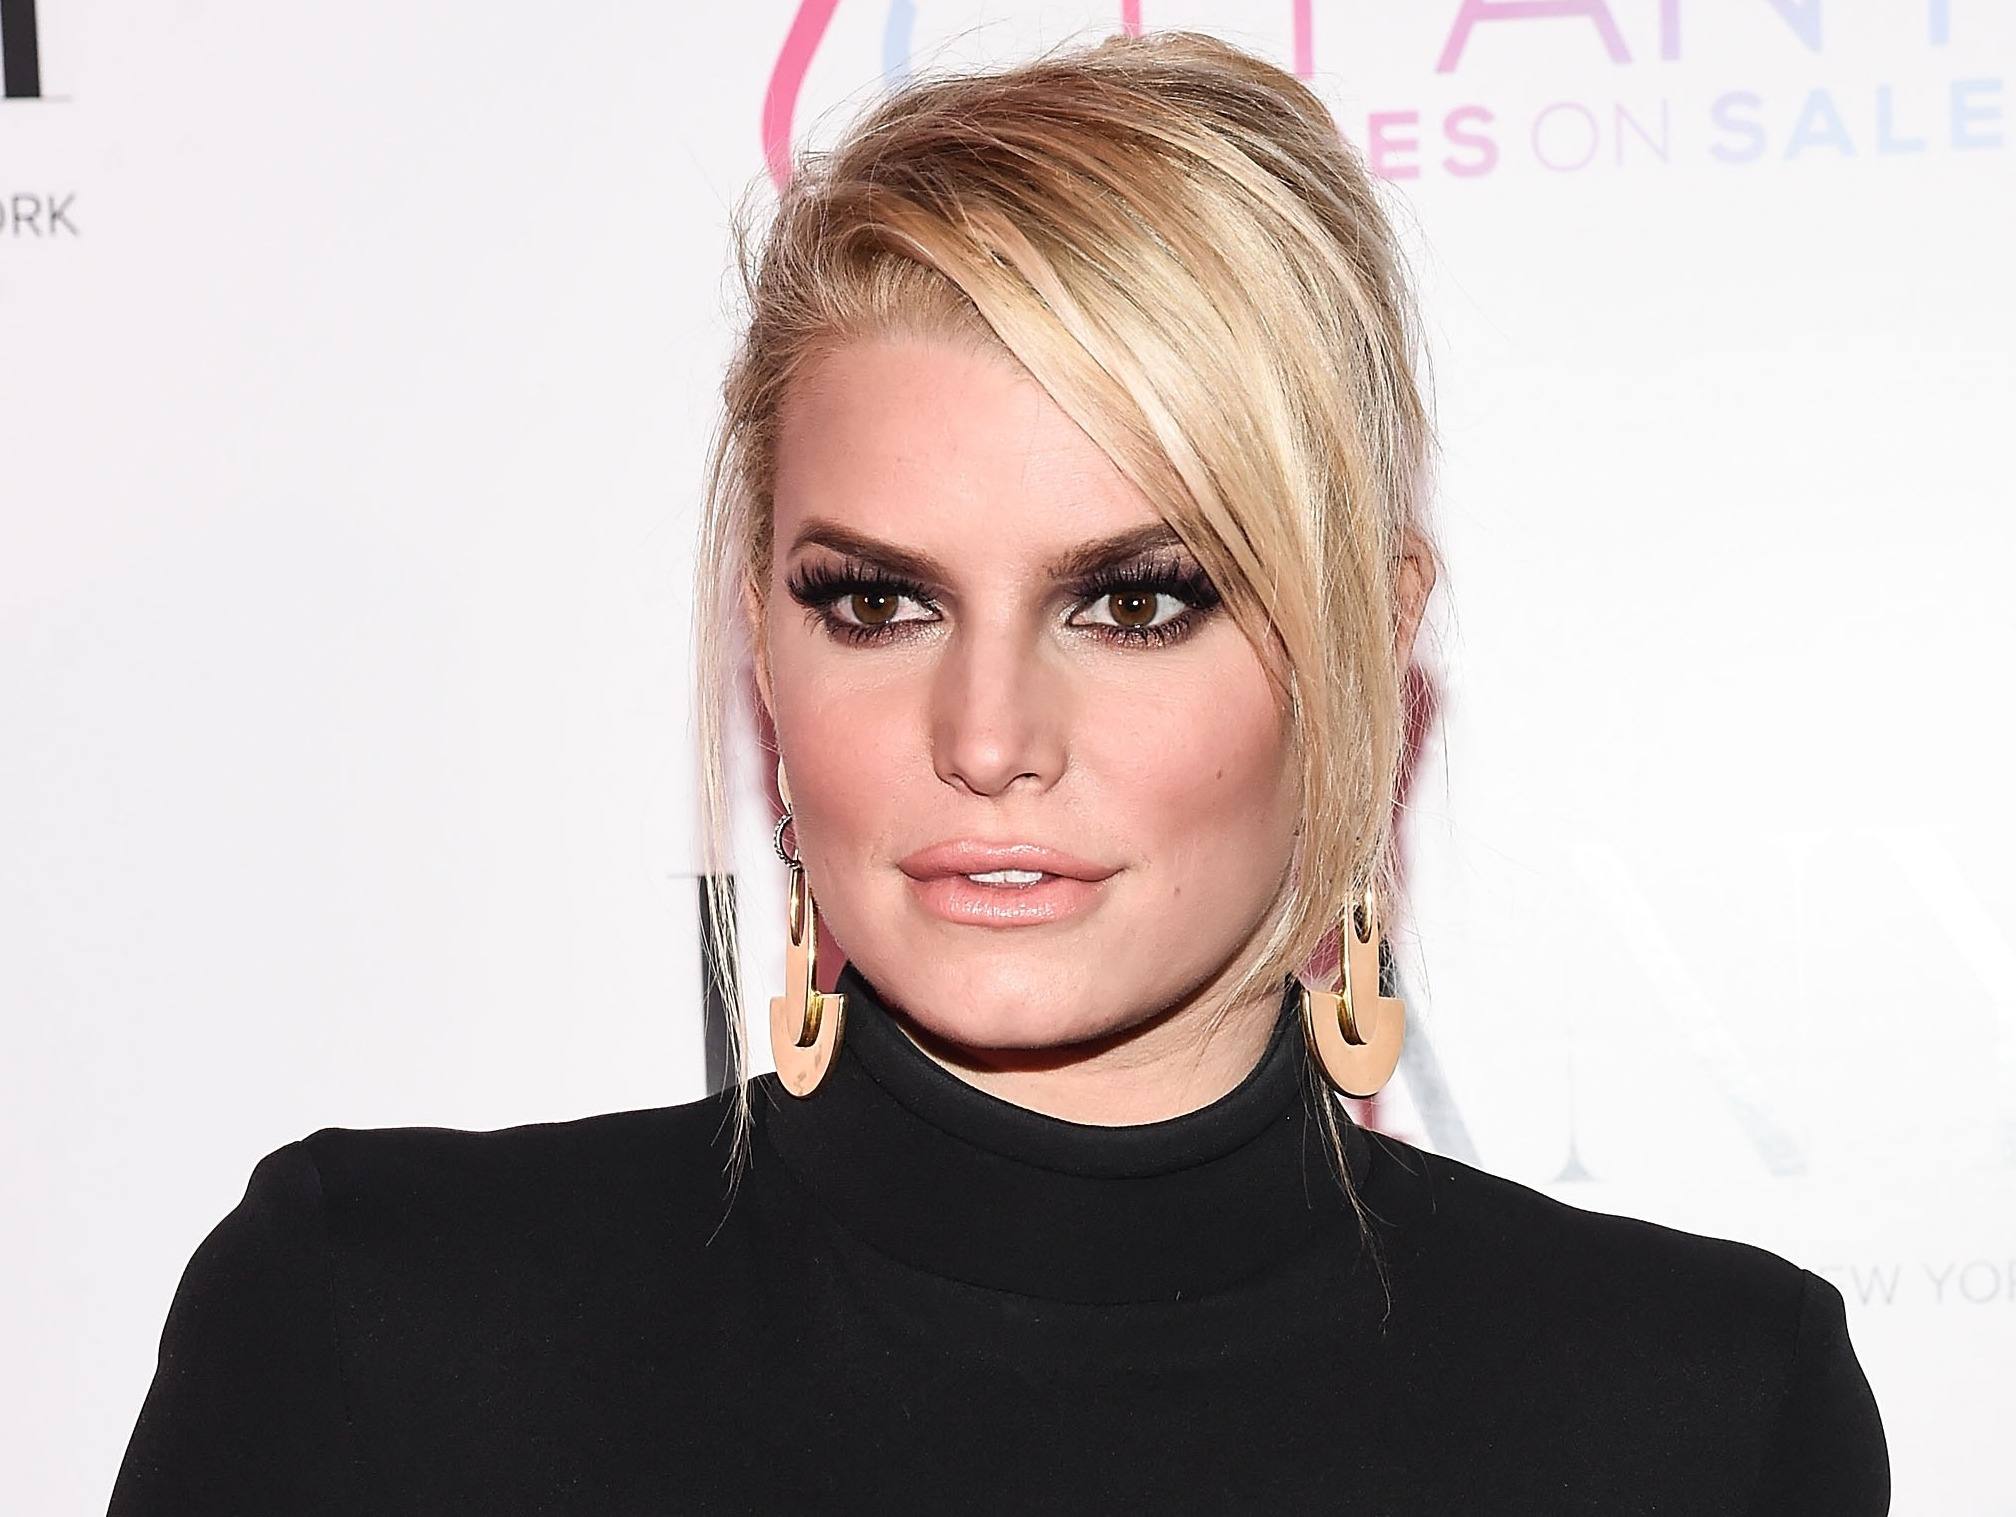 Jessica Simpson's daughter looks exactly like her mom in this latest Instagram pic